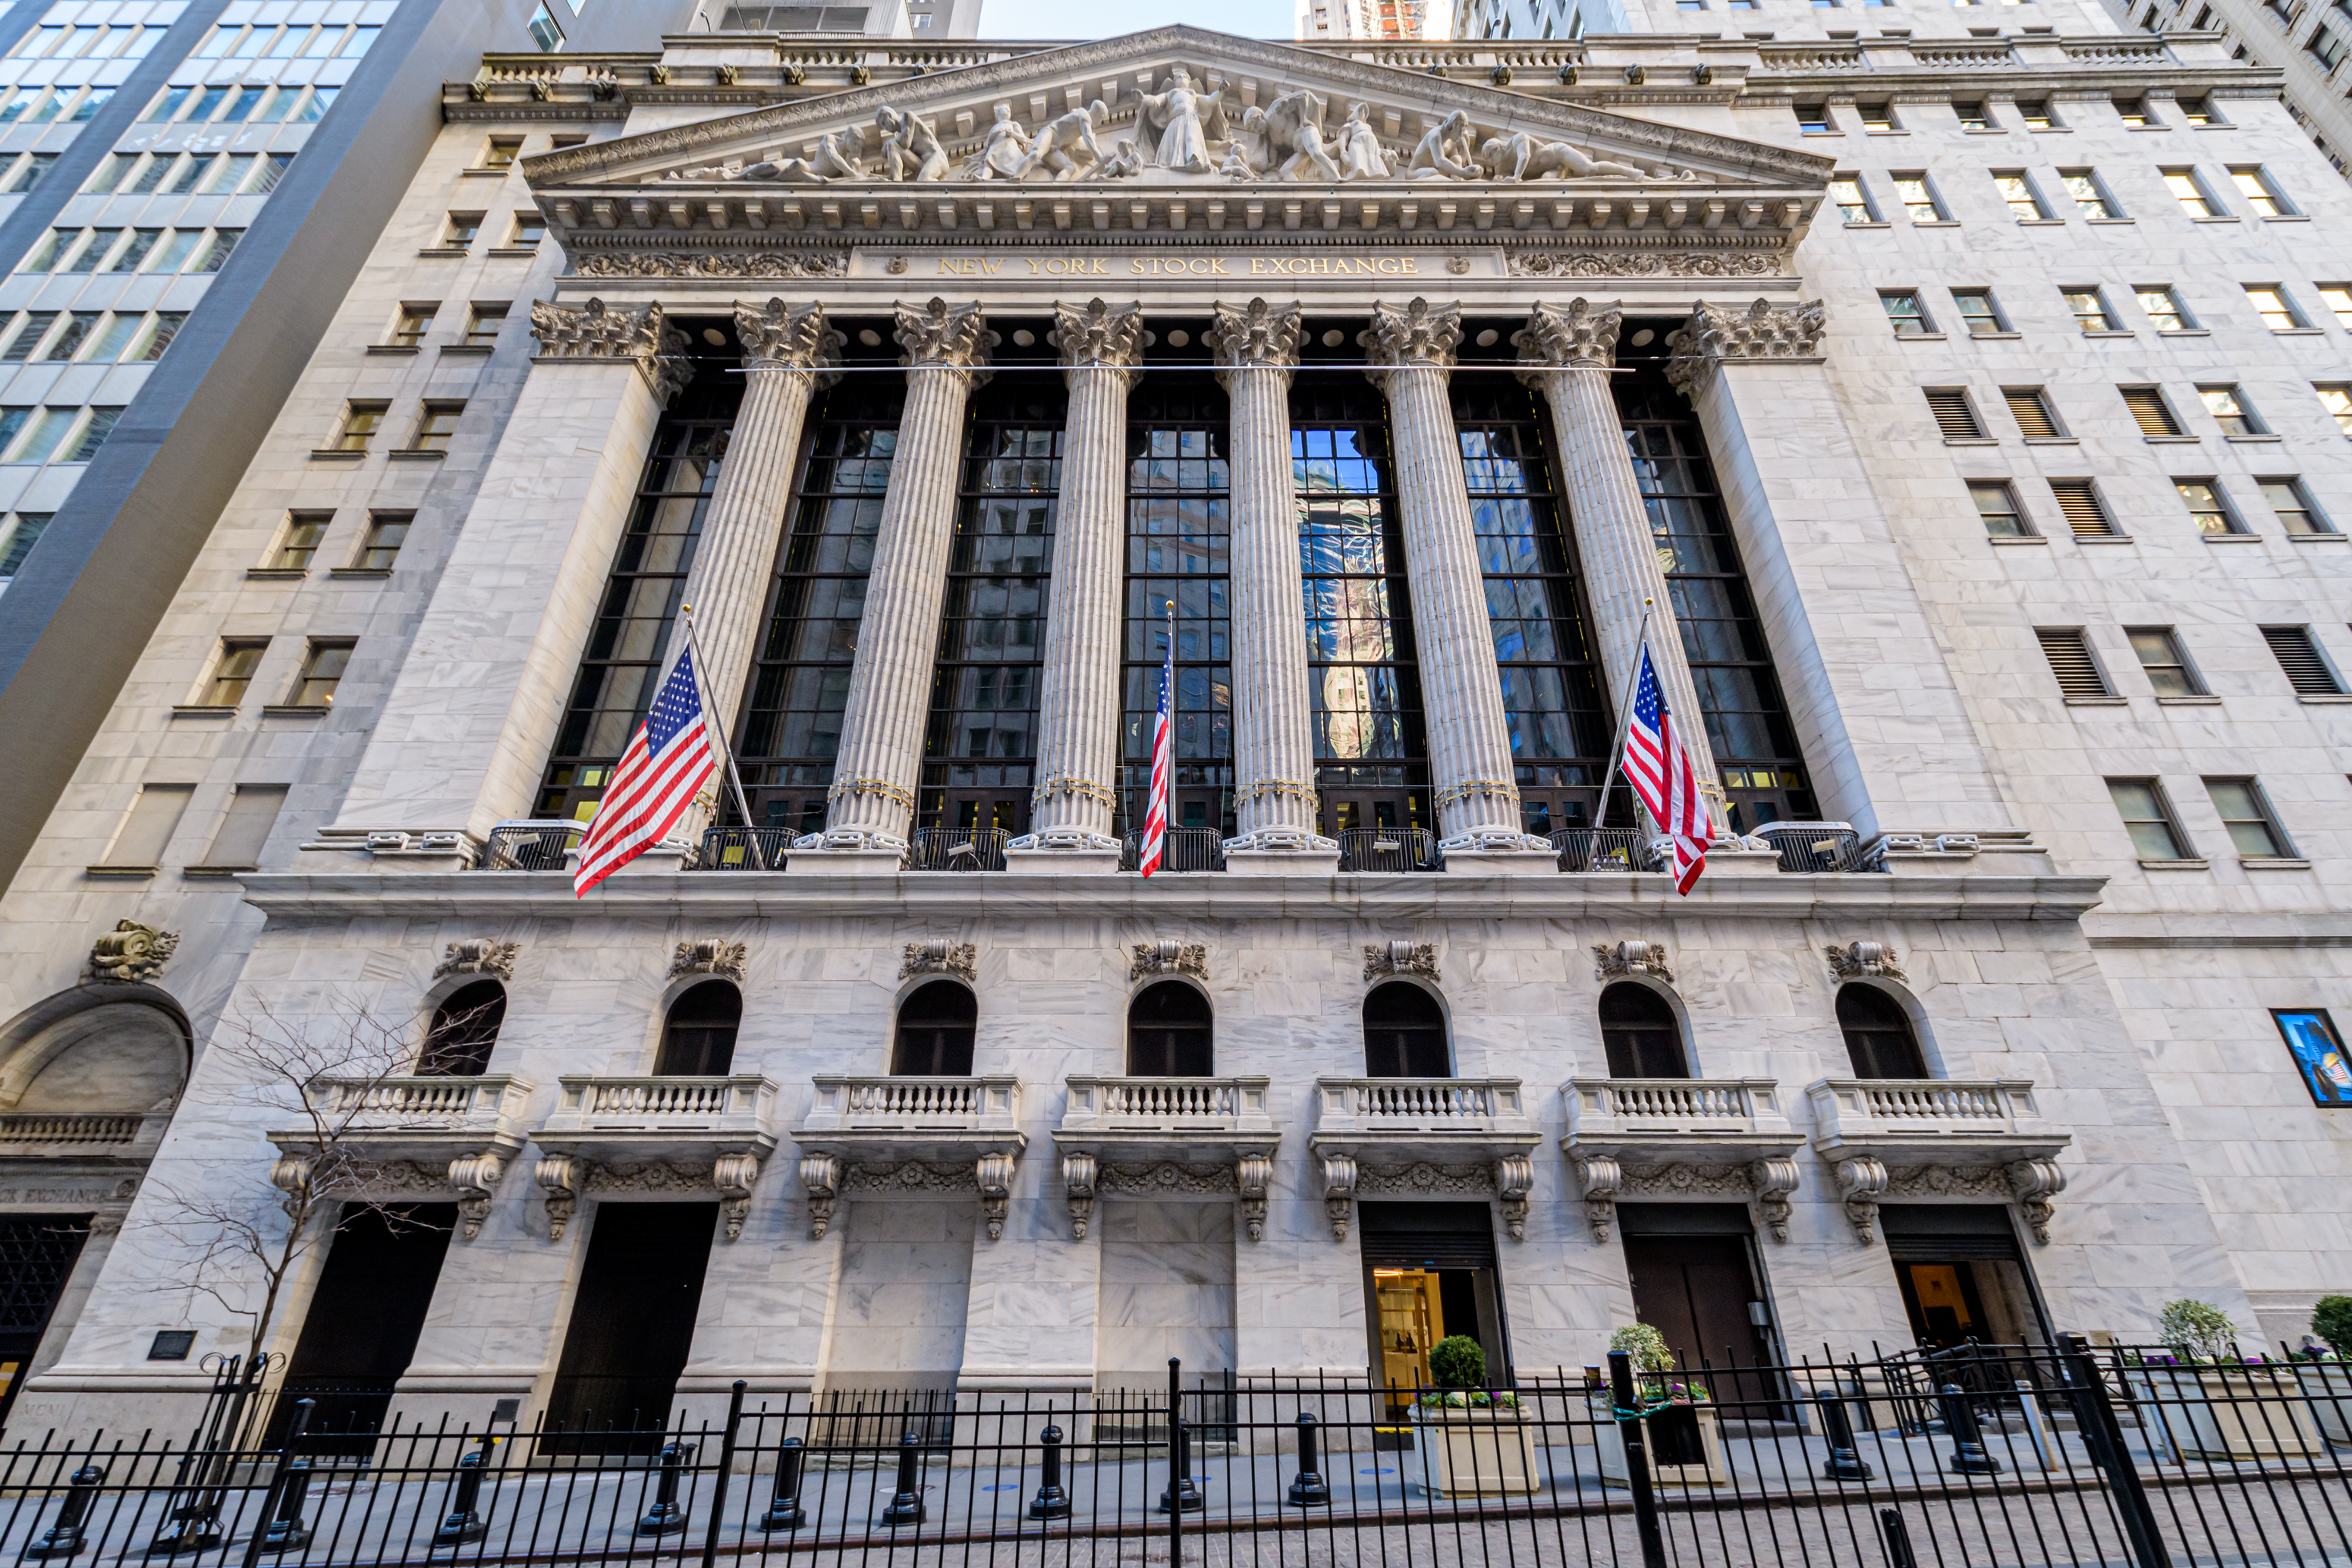 MANHATTAN, NEW YORK, UNITED STATES - 2021/01/28: Front view of The New York Stock Exchange in Wall Street. (Photo by Erik McGregor/LightRocket via Getty Images)